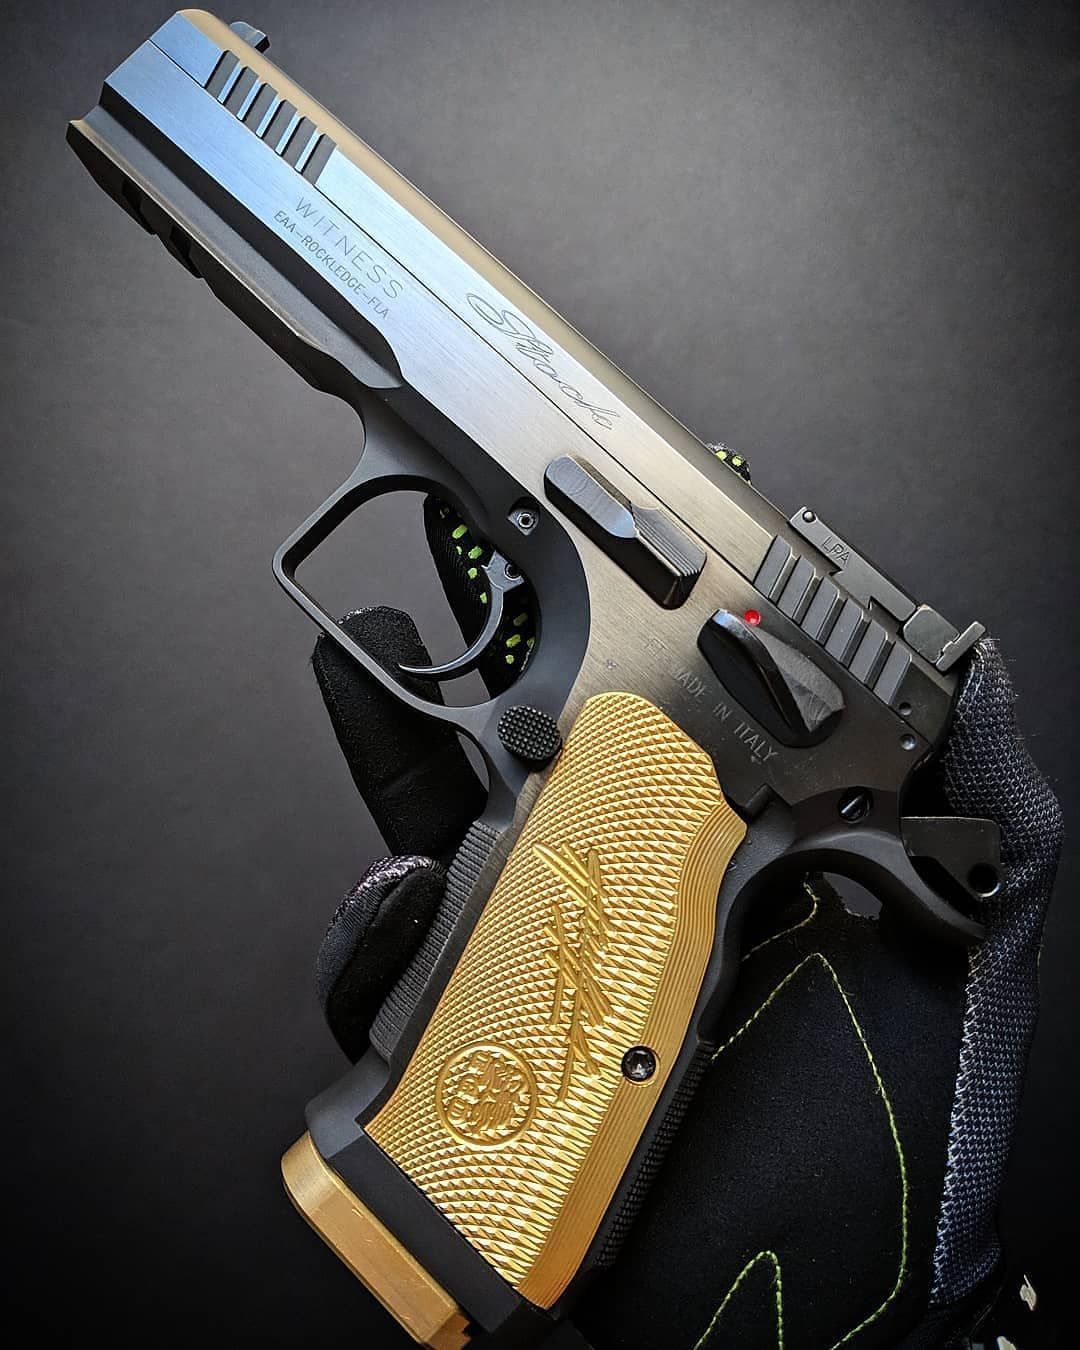 High Quality Magazine Speedloader Manufactured In The Usa In 2021 Hand Guns Firearms Guns